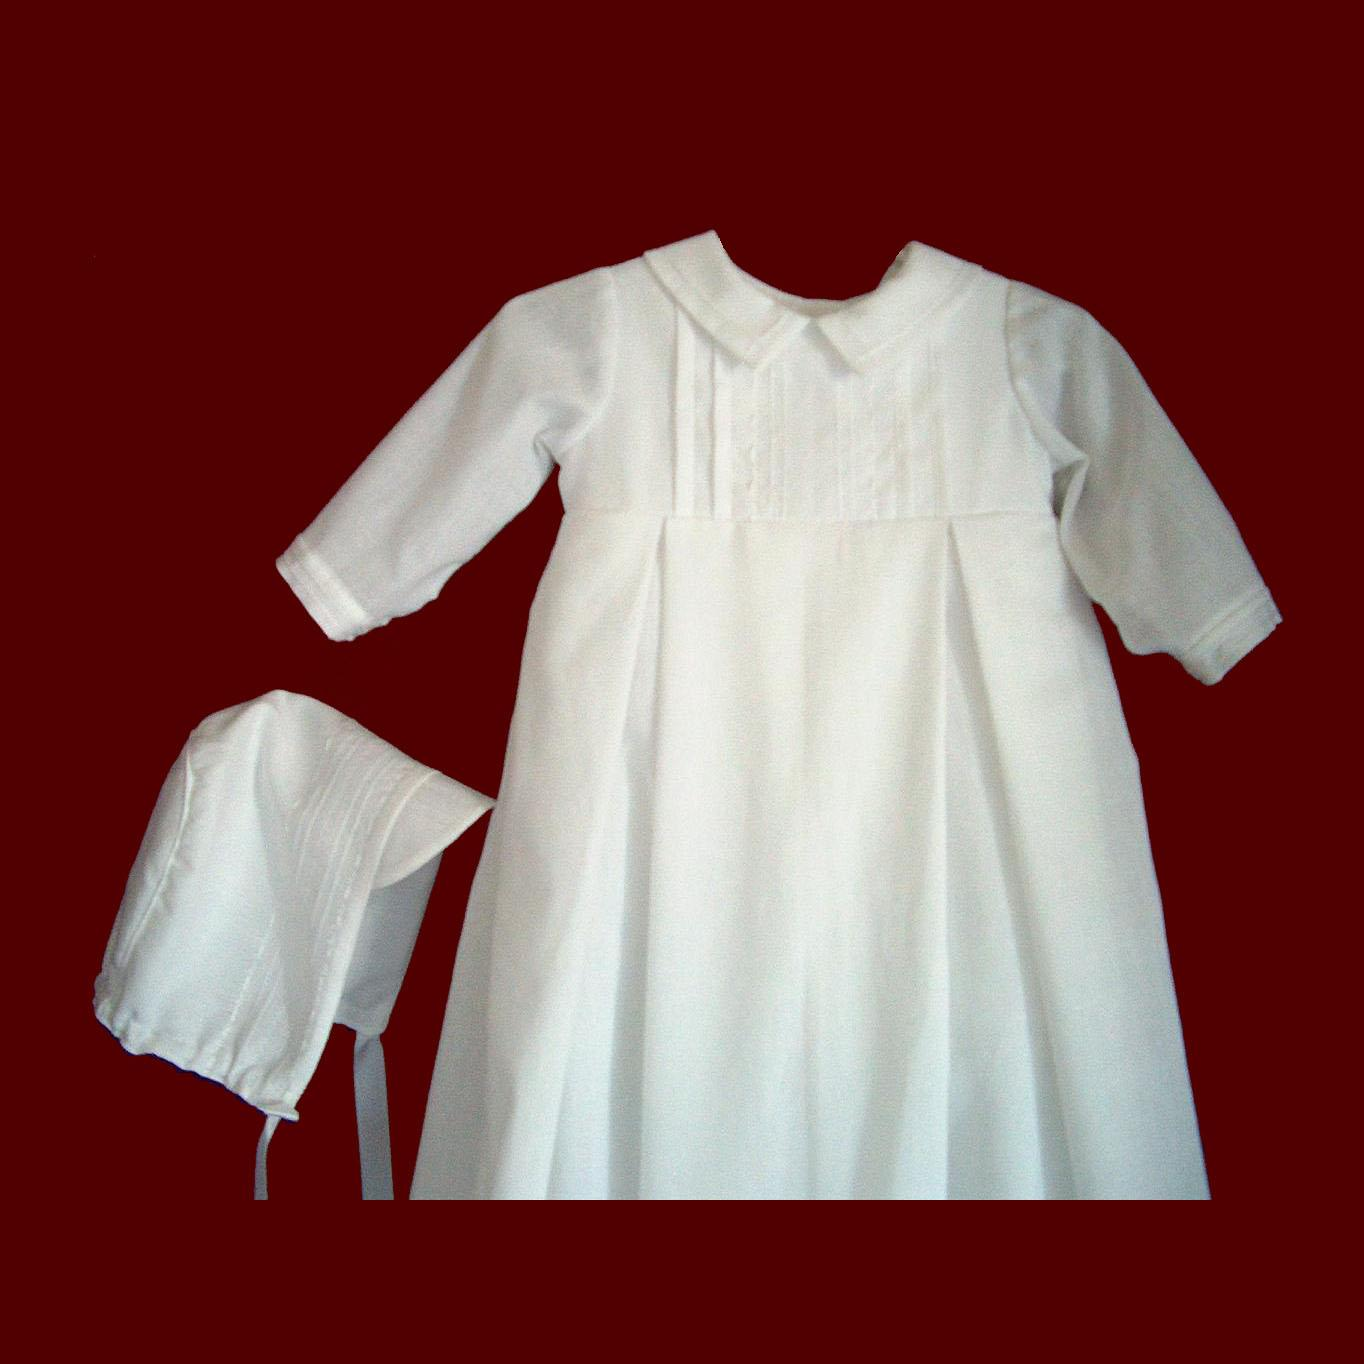 a974872cf4b7 Linen Batiste Boys Christening Gown - Boys Gowns   Detachable Gowns ...